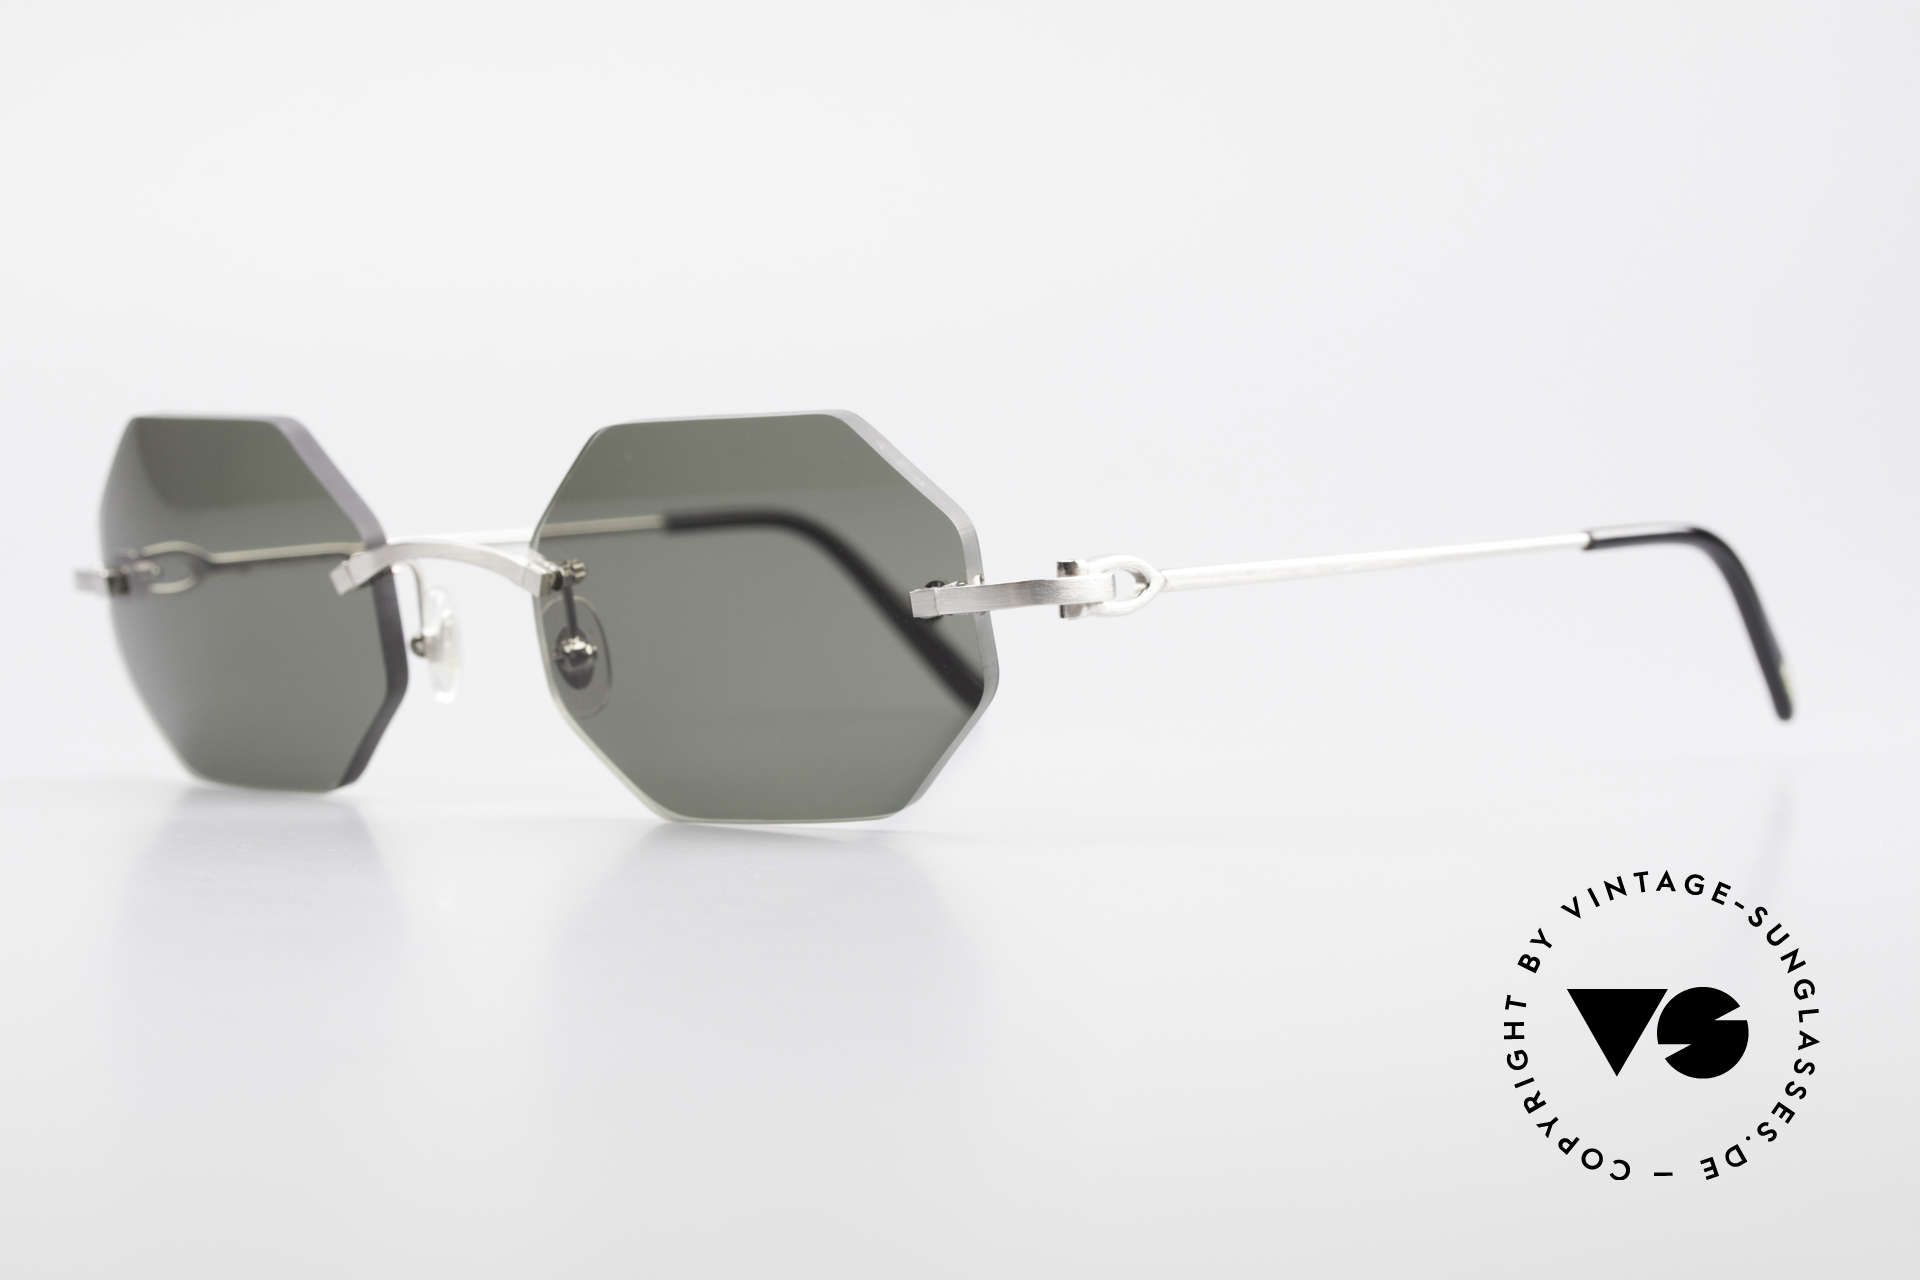 Cartier C-Decor Octag Octagonal Luxury Sunglasses, model of the C-Decor series with new OCTAG lenses, Made for Men